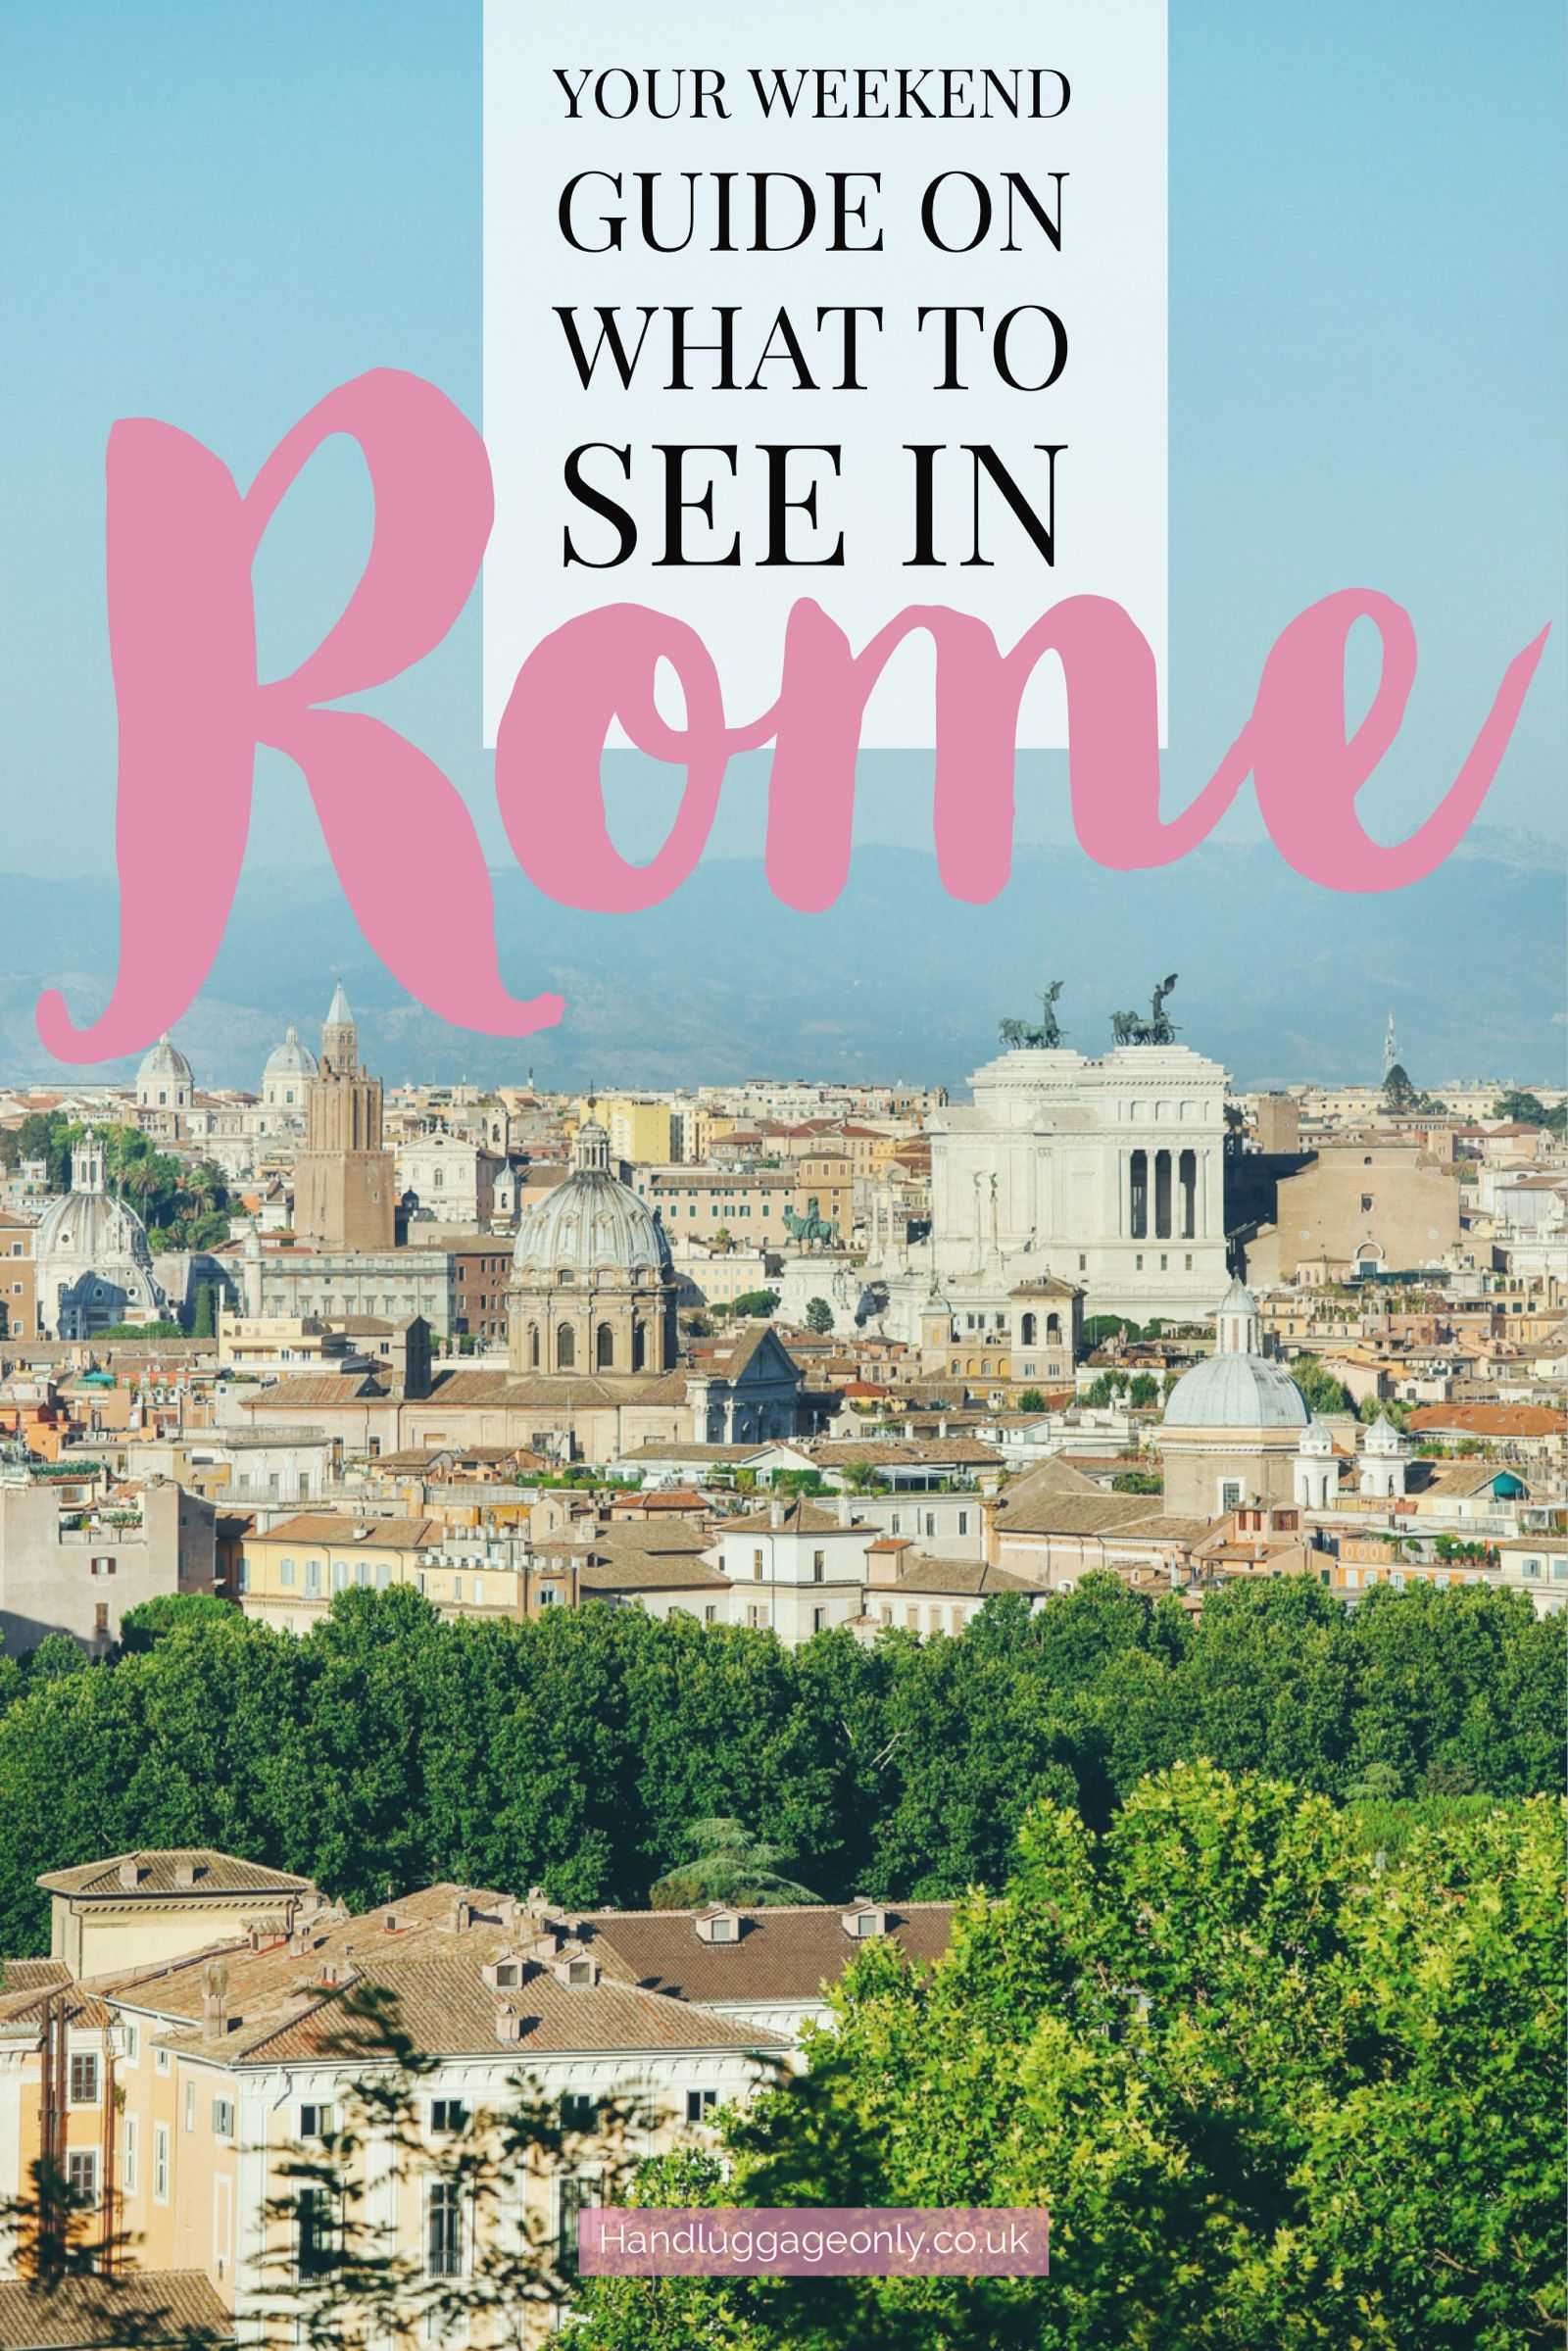 The Complete Weekend Guide On Things To See And Do In Rome (37)